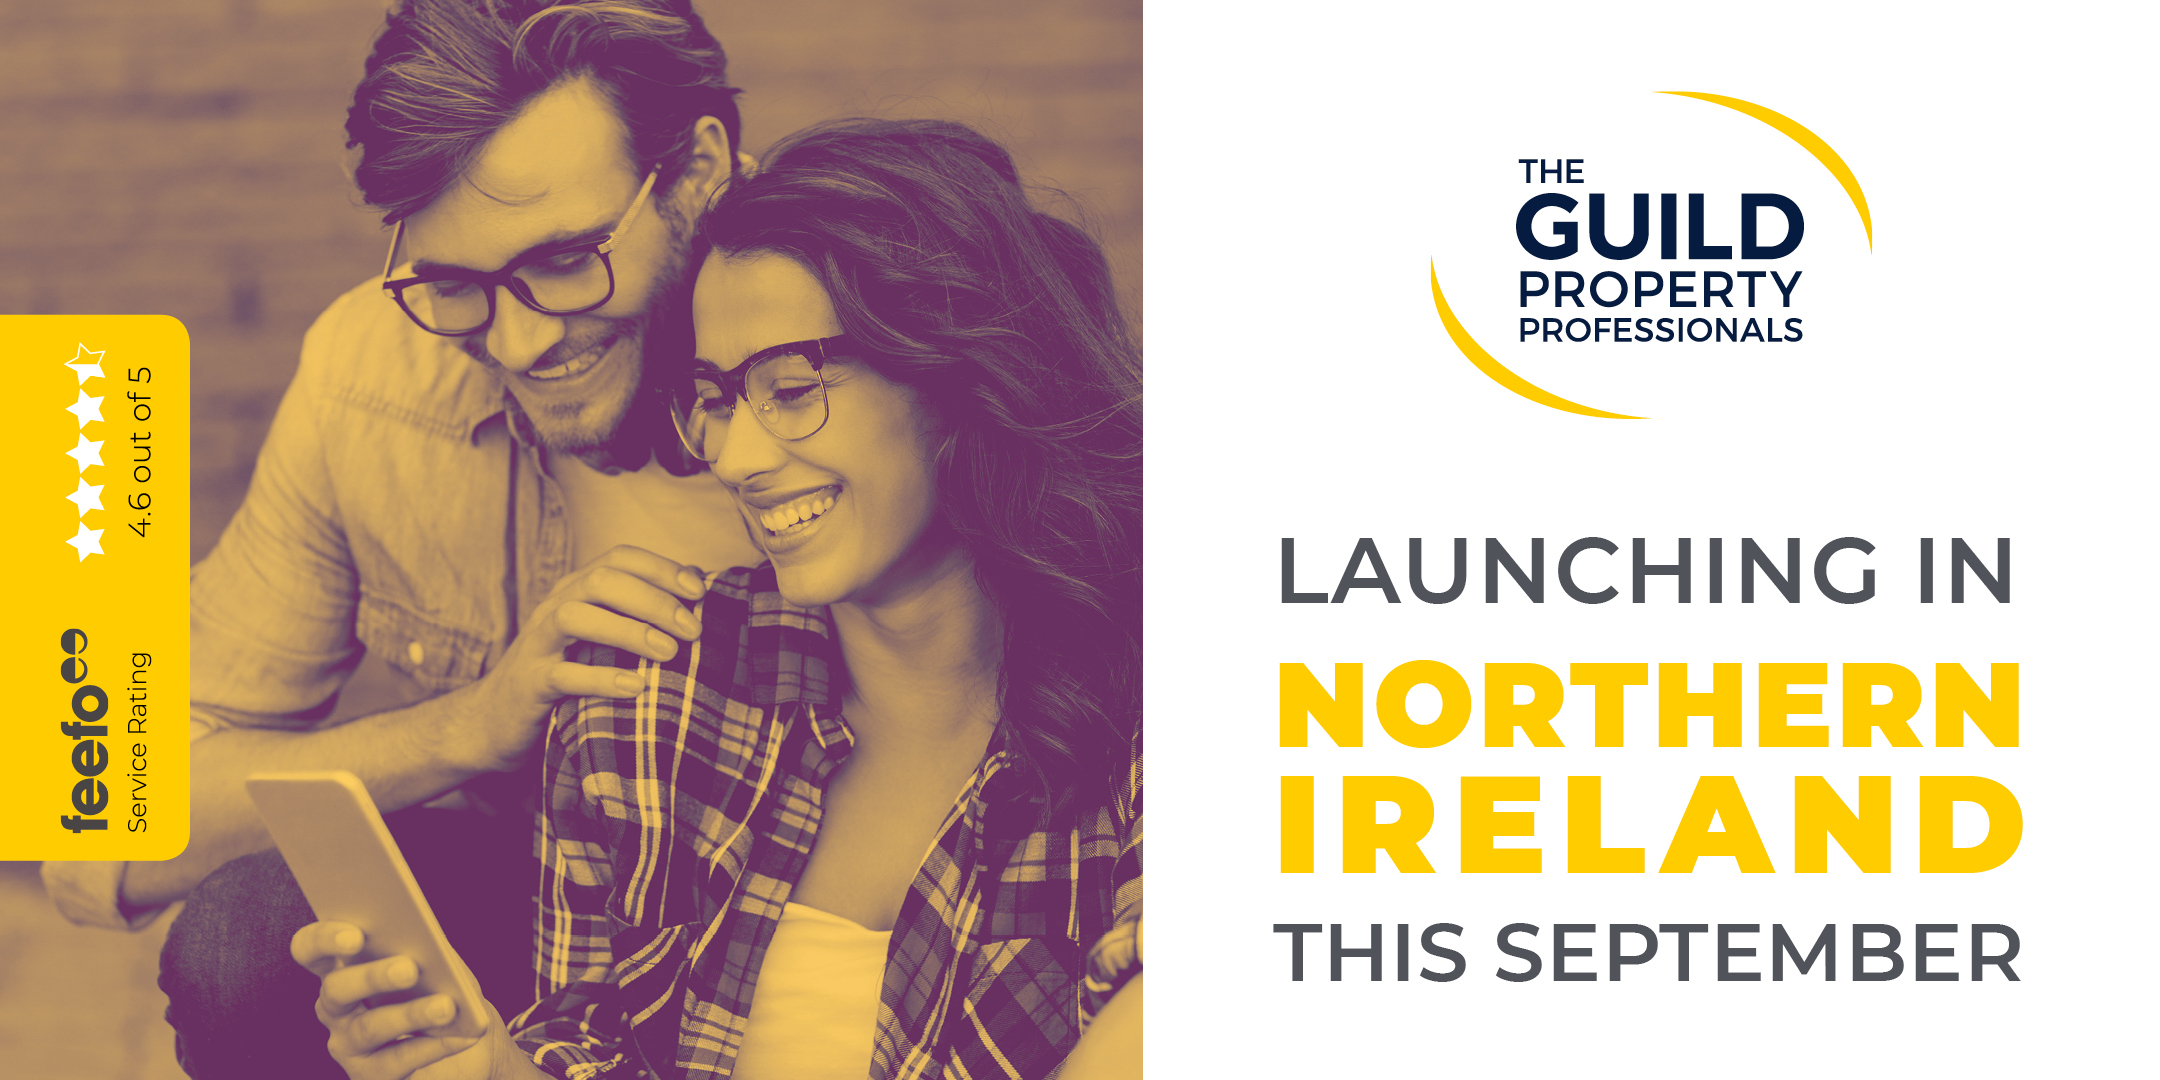 The Guild expands to Northern Ireland